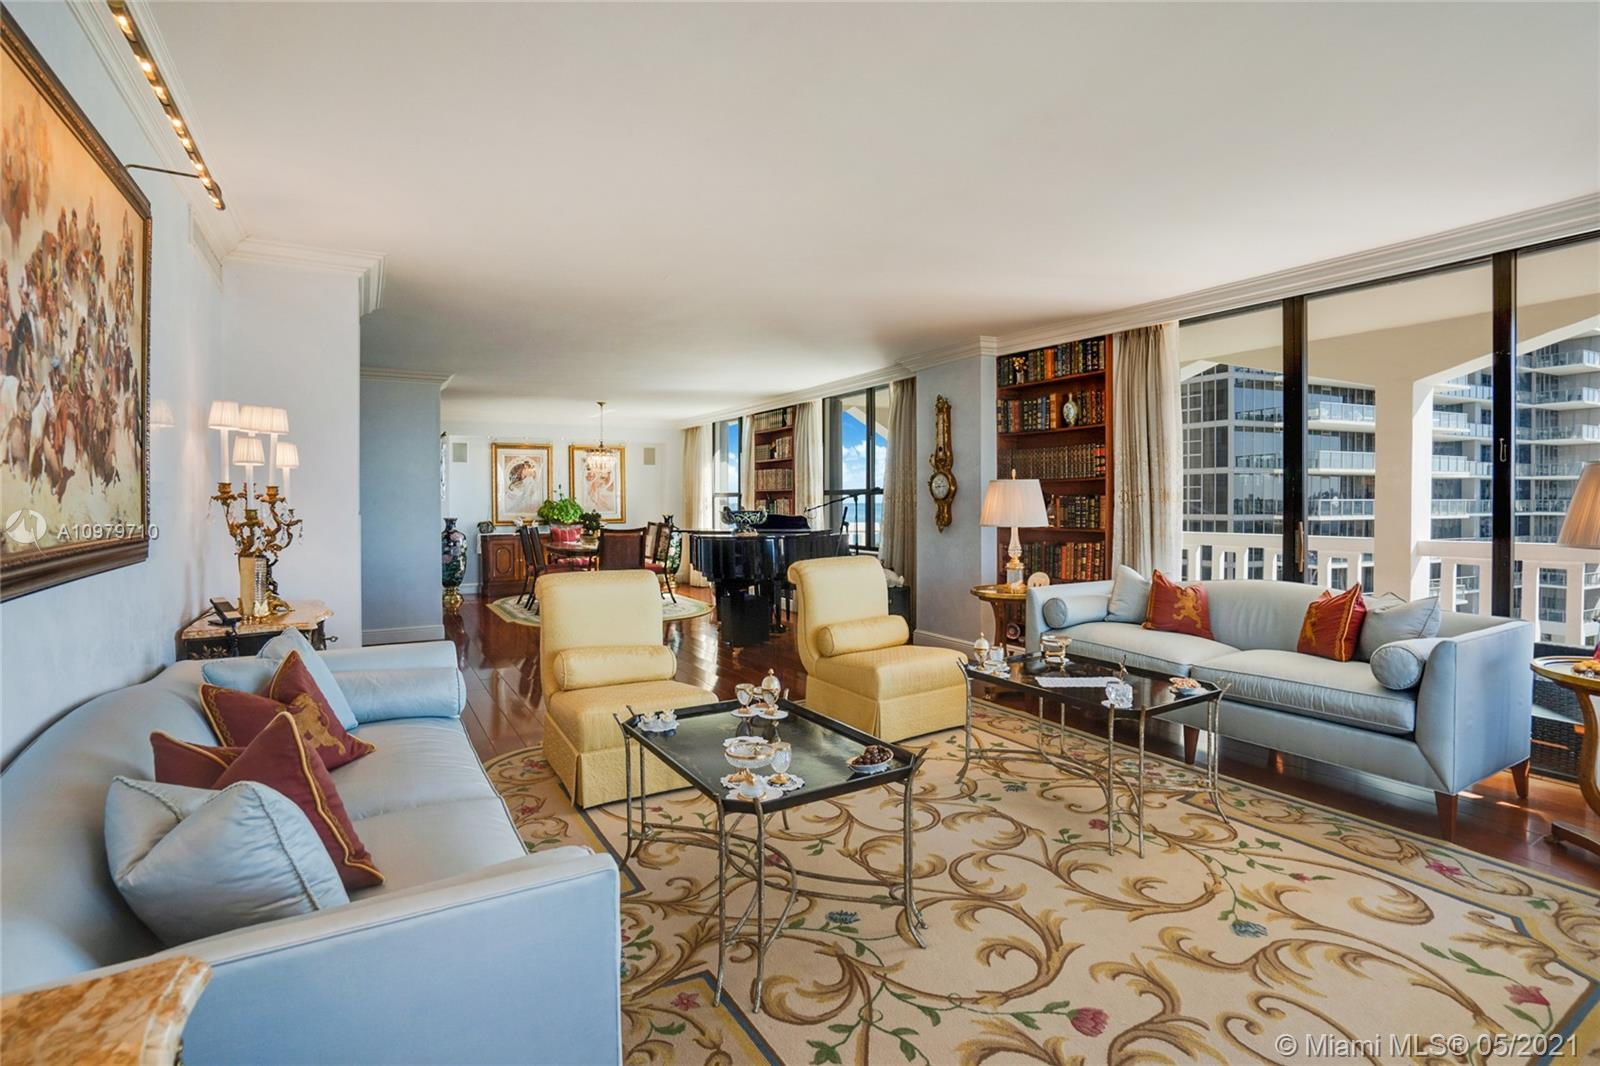 Photo of 9801 Collins Ave #10R, Bal Harbour, Florida, 33154 - Living area